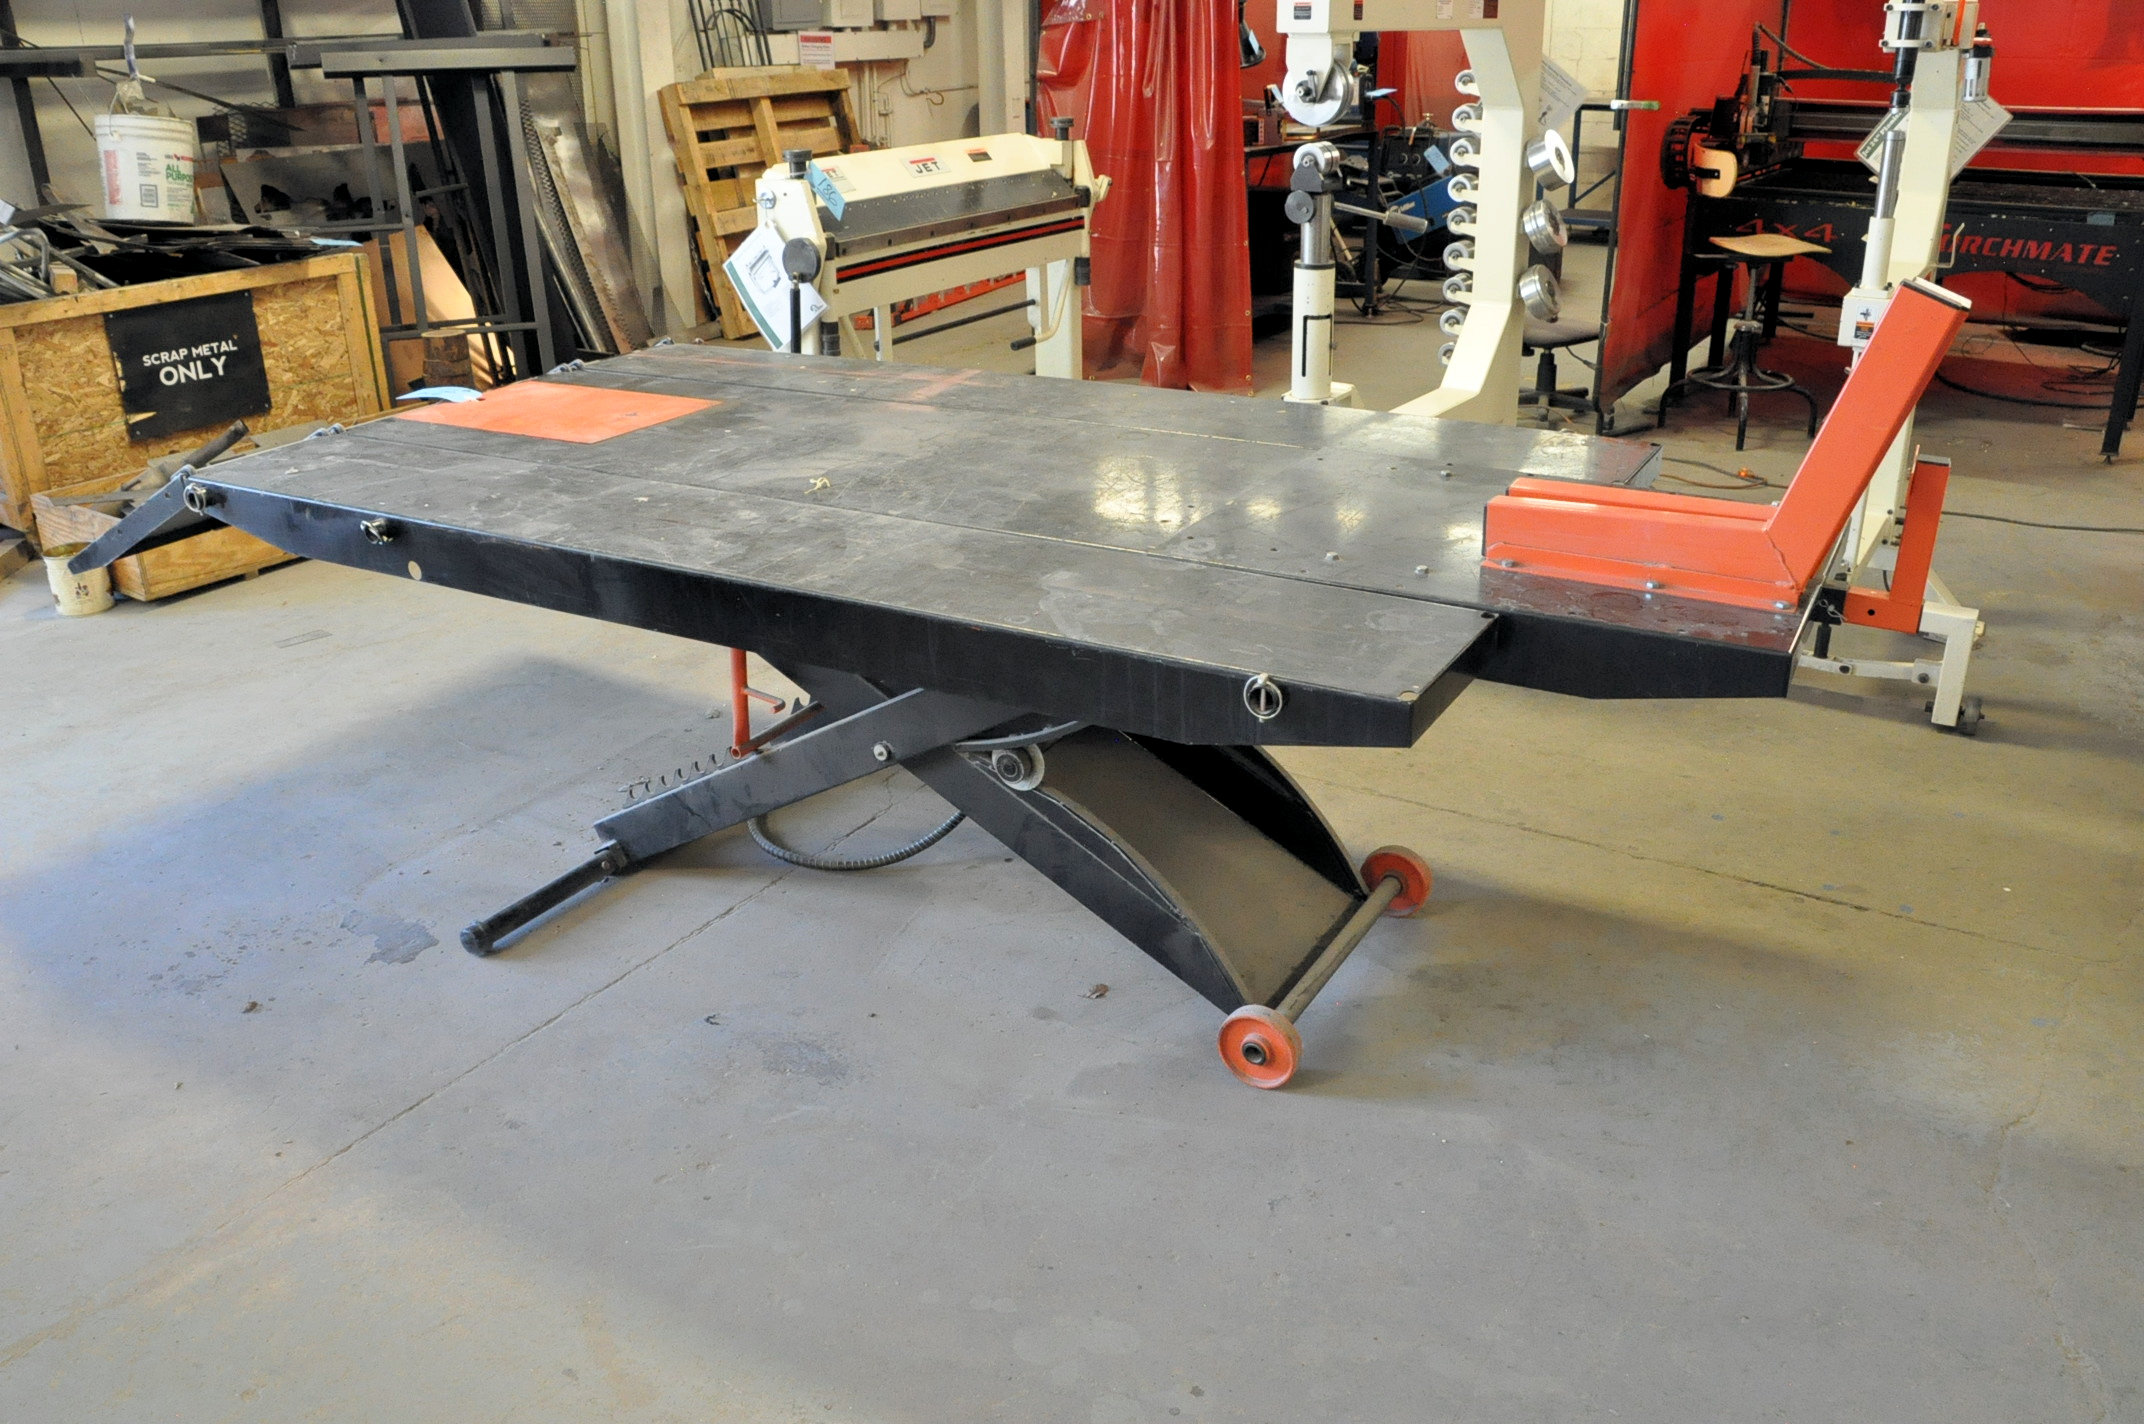 """No Name Model JMML-1000, Motorcycle Lift Table, S/n N/a, Table Size: 48"""" x 96"""", 1,500 LB Capacity - Image 2 of 2"""